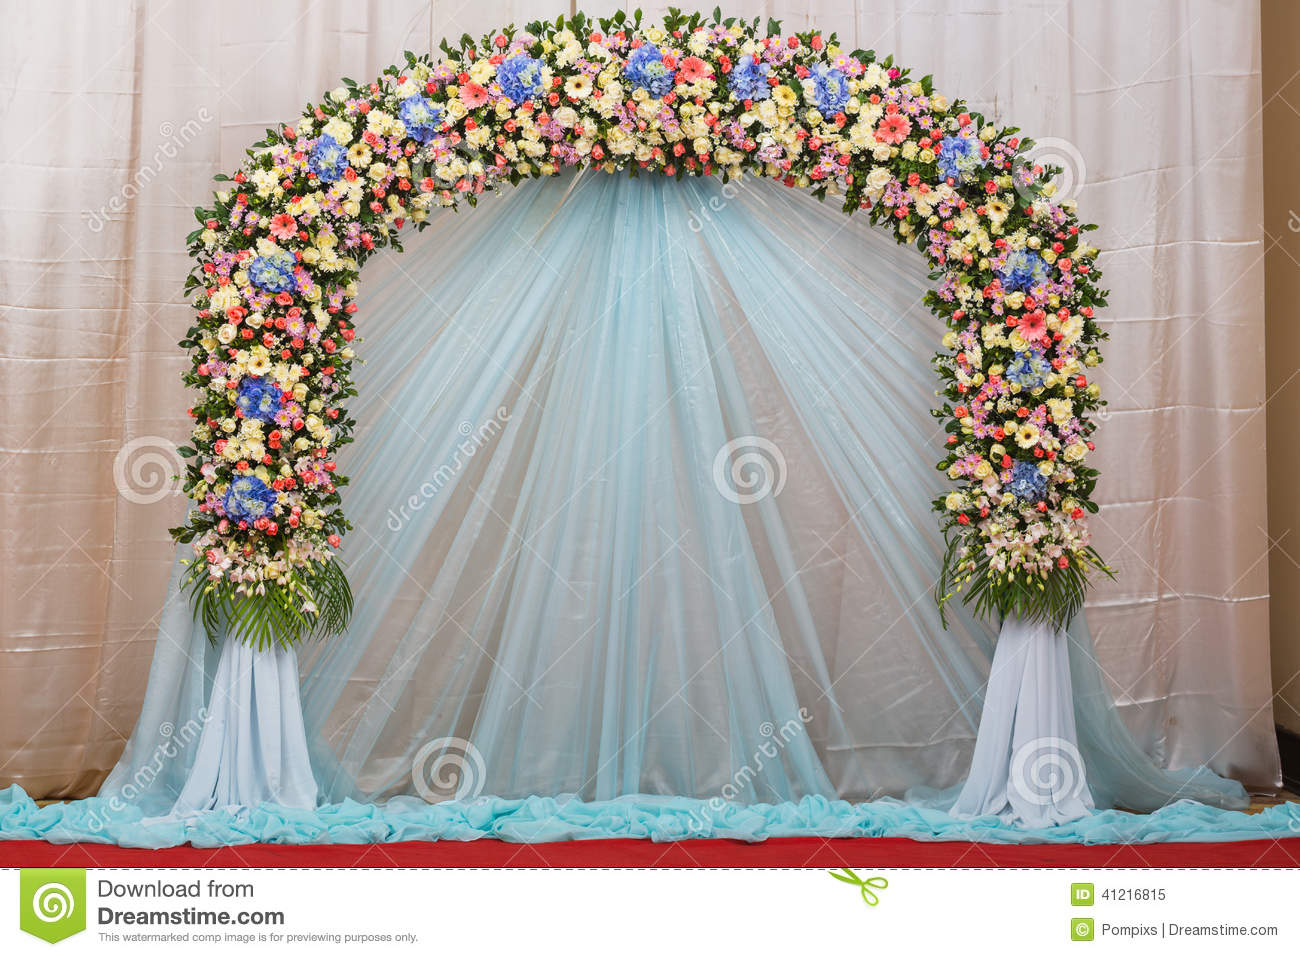 Background Of Beautiful Flower Wedding Decorate Stock